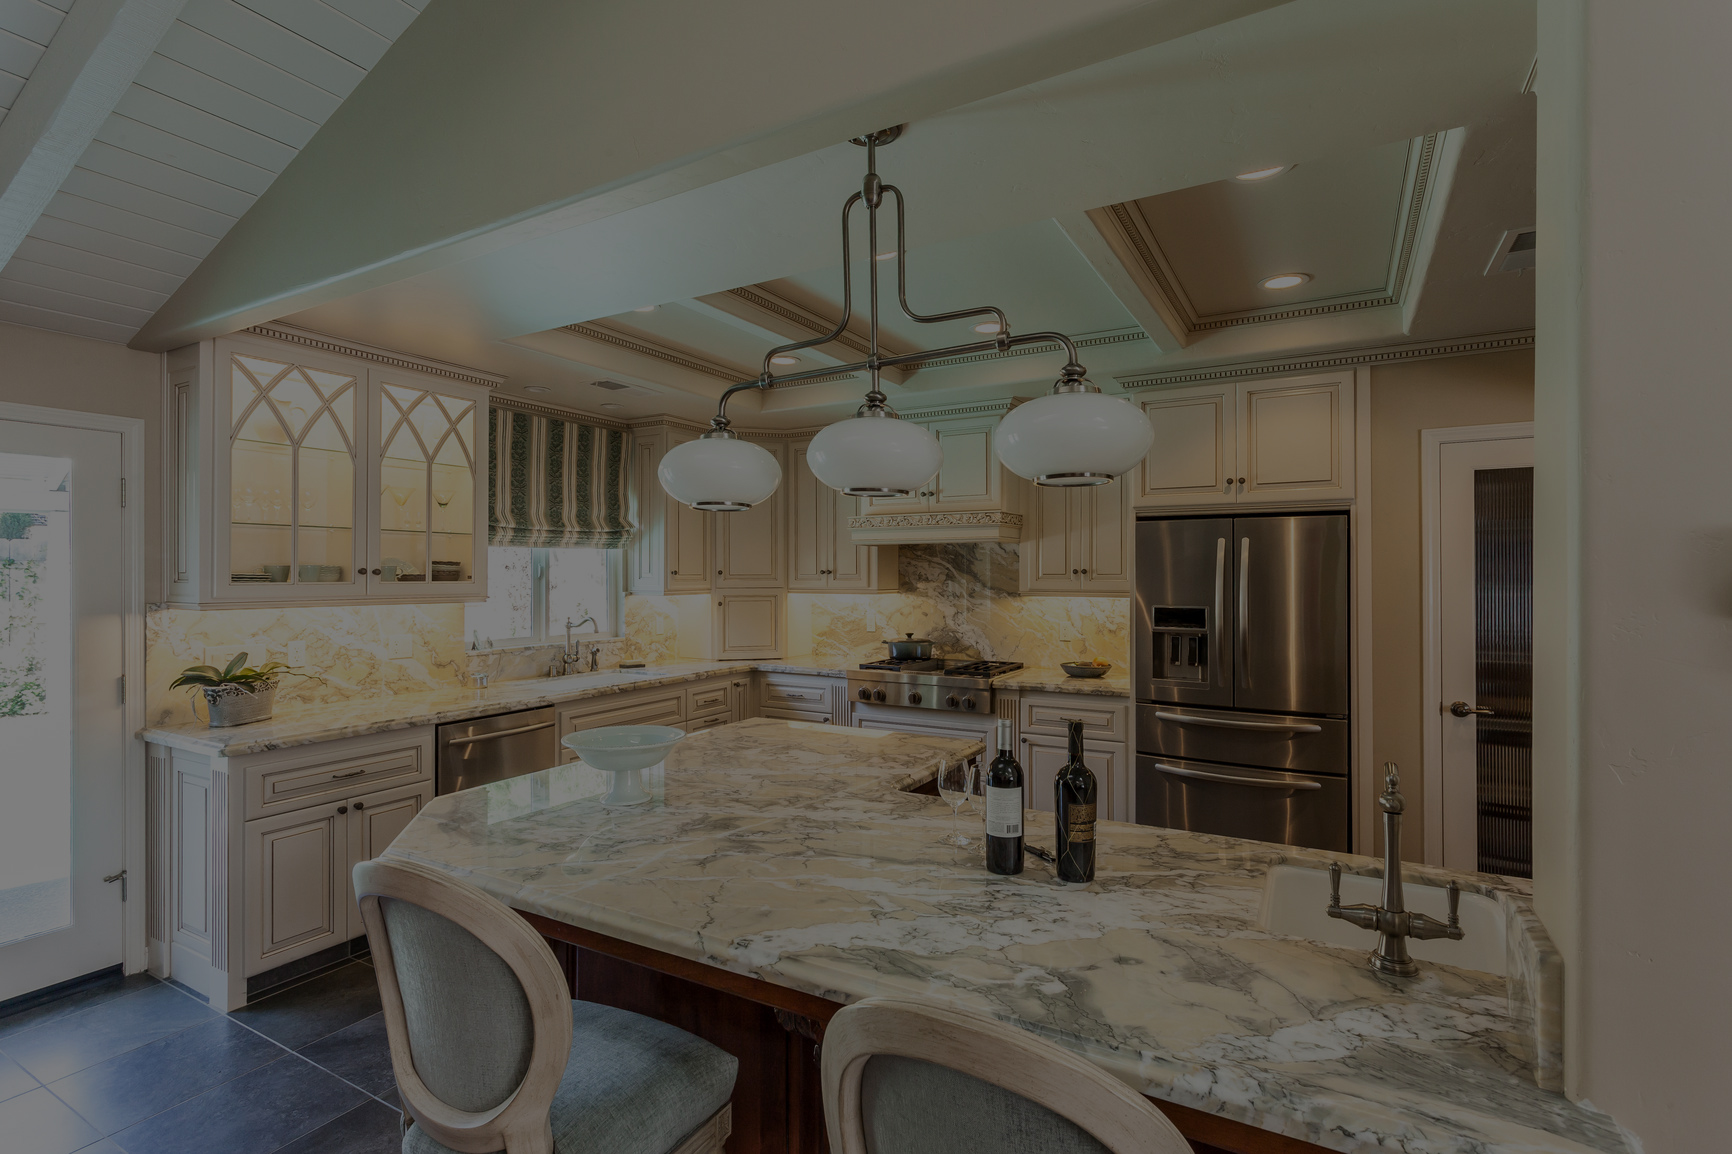 3338980-bright-kitchen-with-custom-cabinets-and-marble-countertops-m